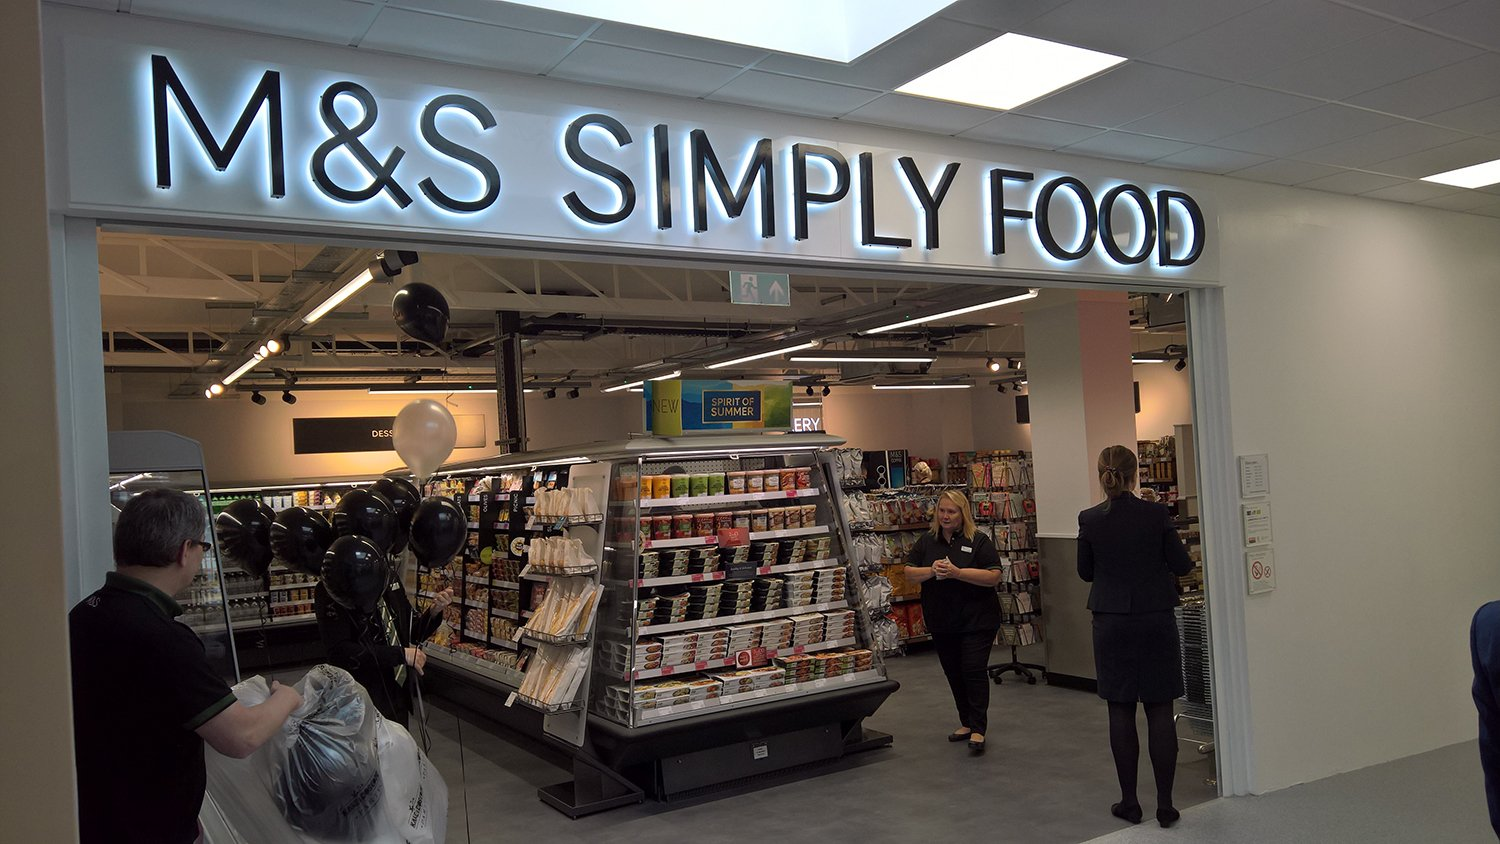 nhs marks spencers Marks & spencer are one of the most well known and loved brands in the uk  today and we are proud to add them to the nhs discount offer.